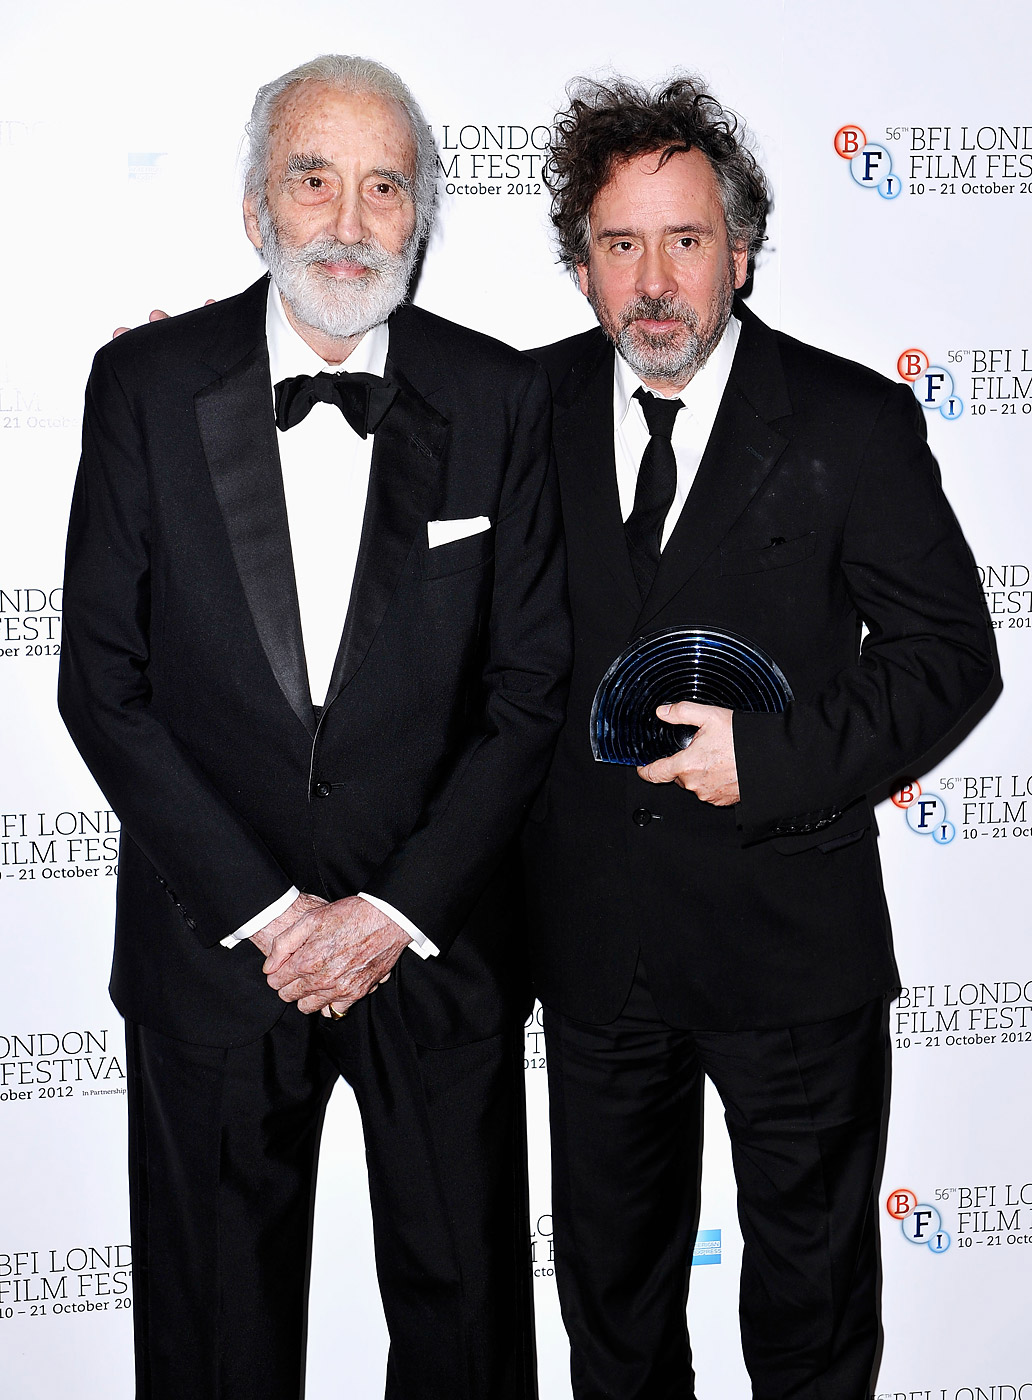 Tim Burton and Christopher Lee during are seen during the 56th BFI London Film Festival Awards at the Banqueting House on Oct. 20, 2012 in London.